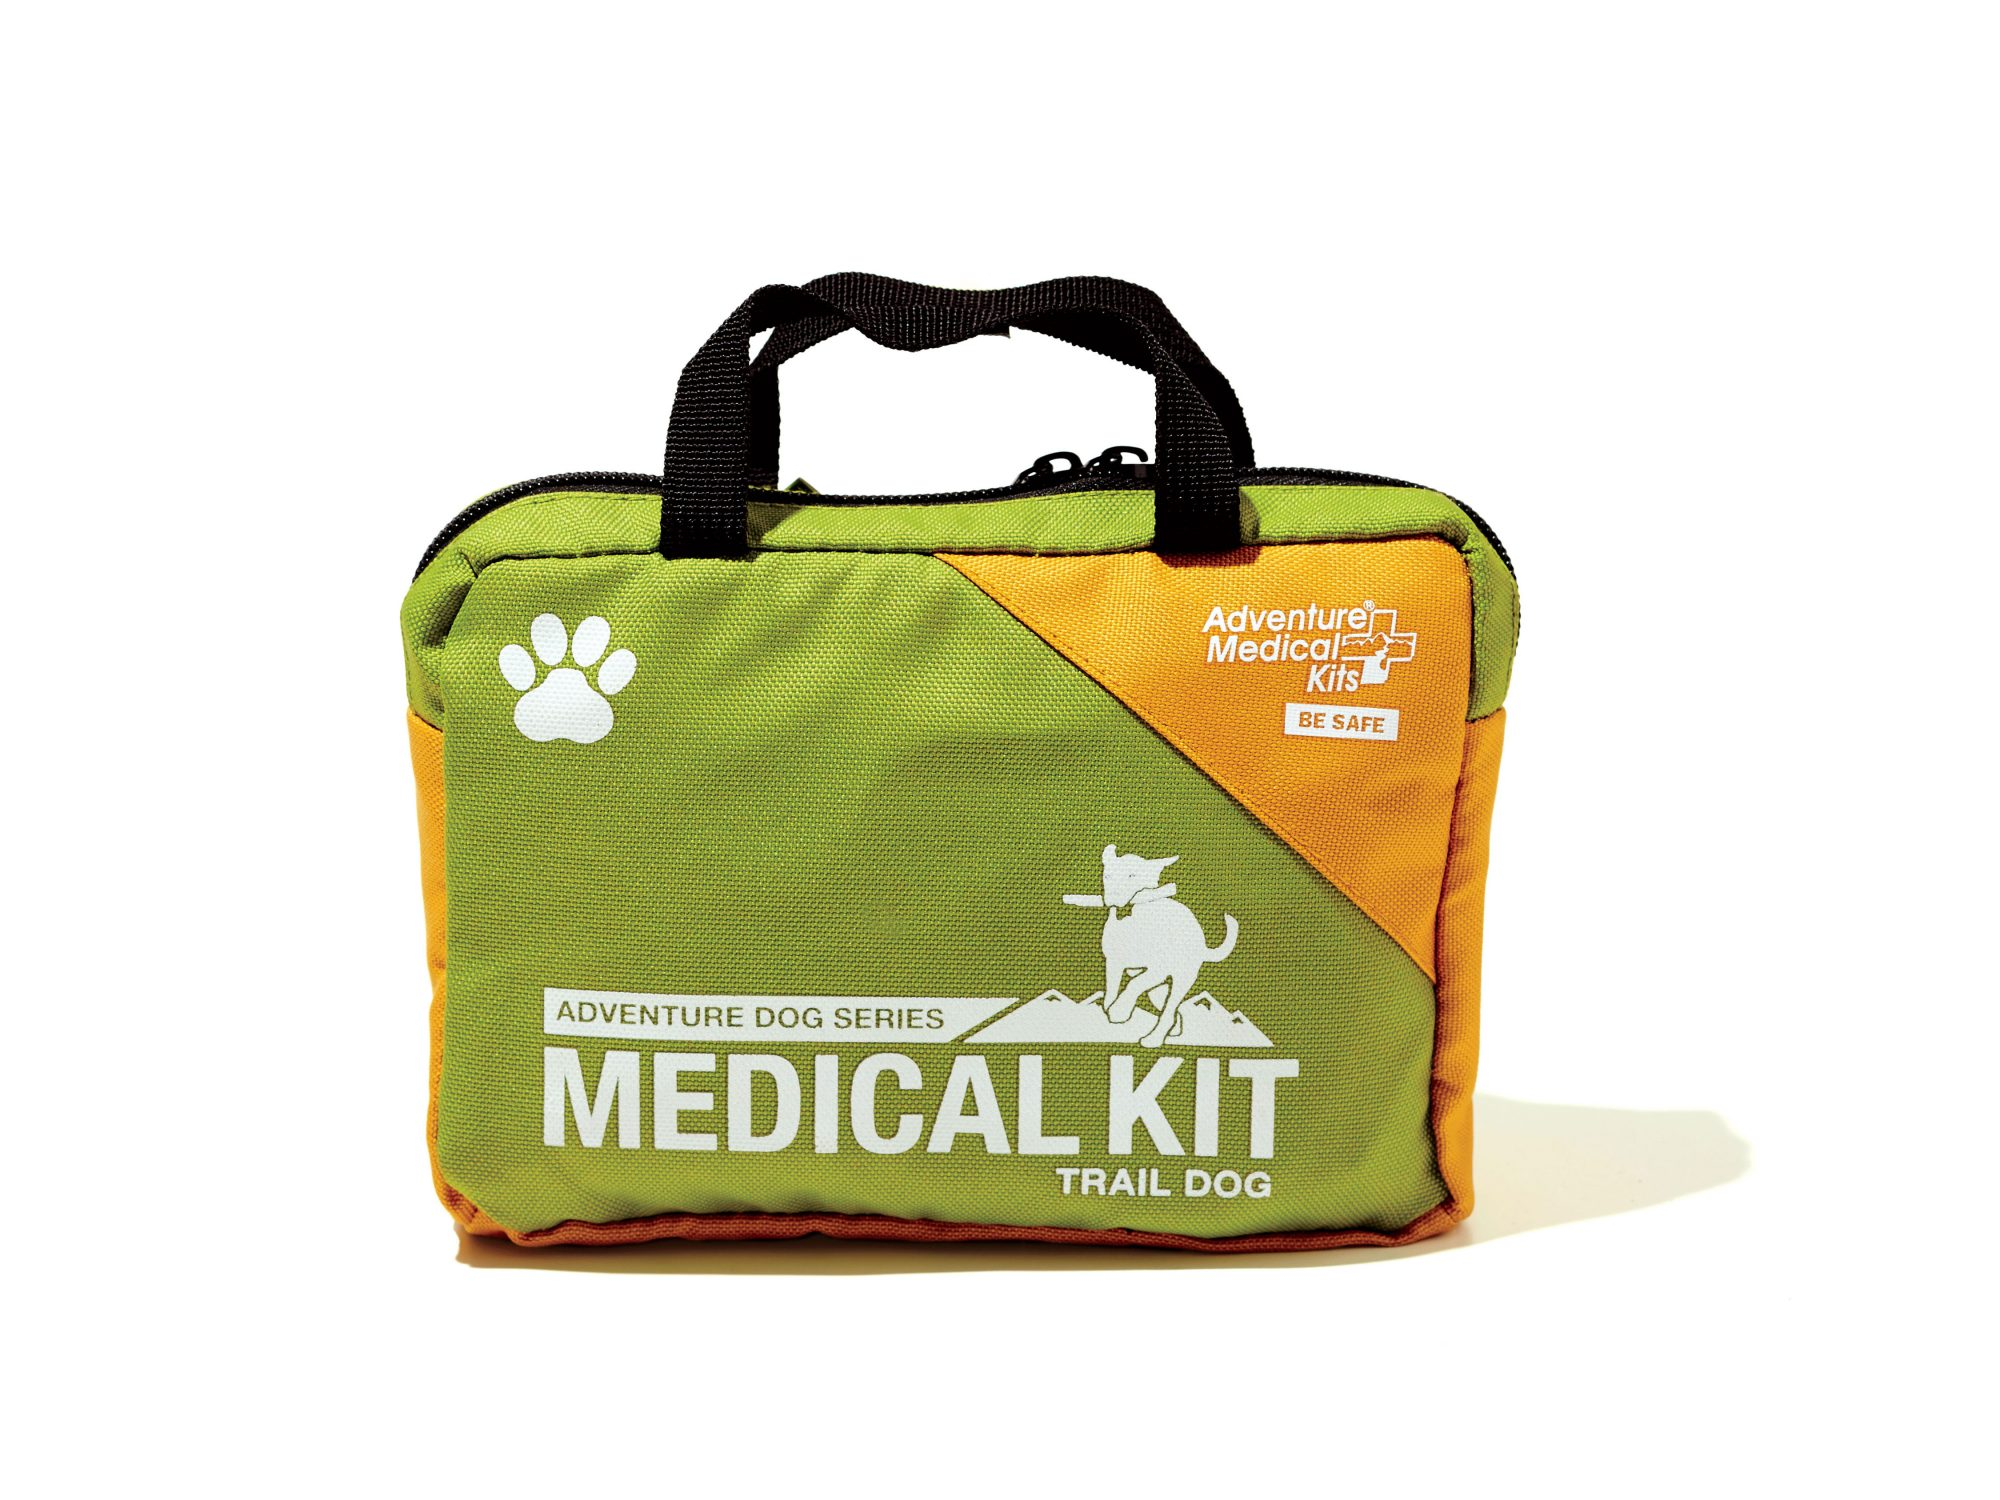 Adventure Dog Series Trail Dog Medical Kit